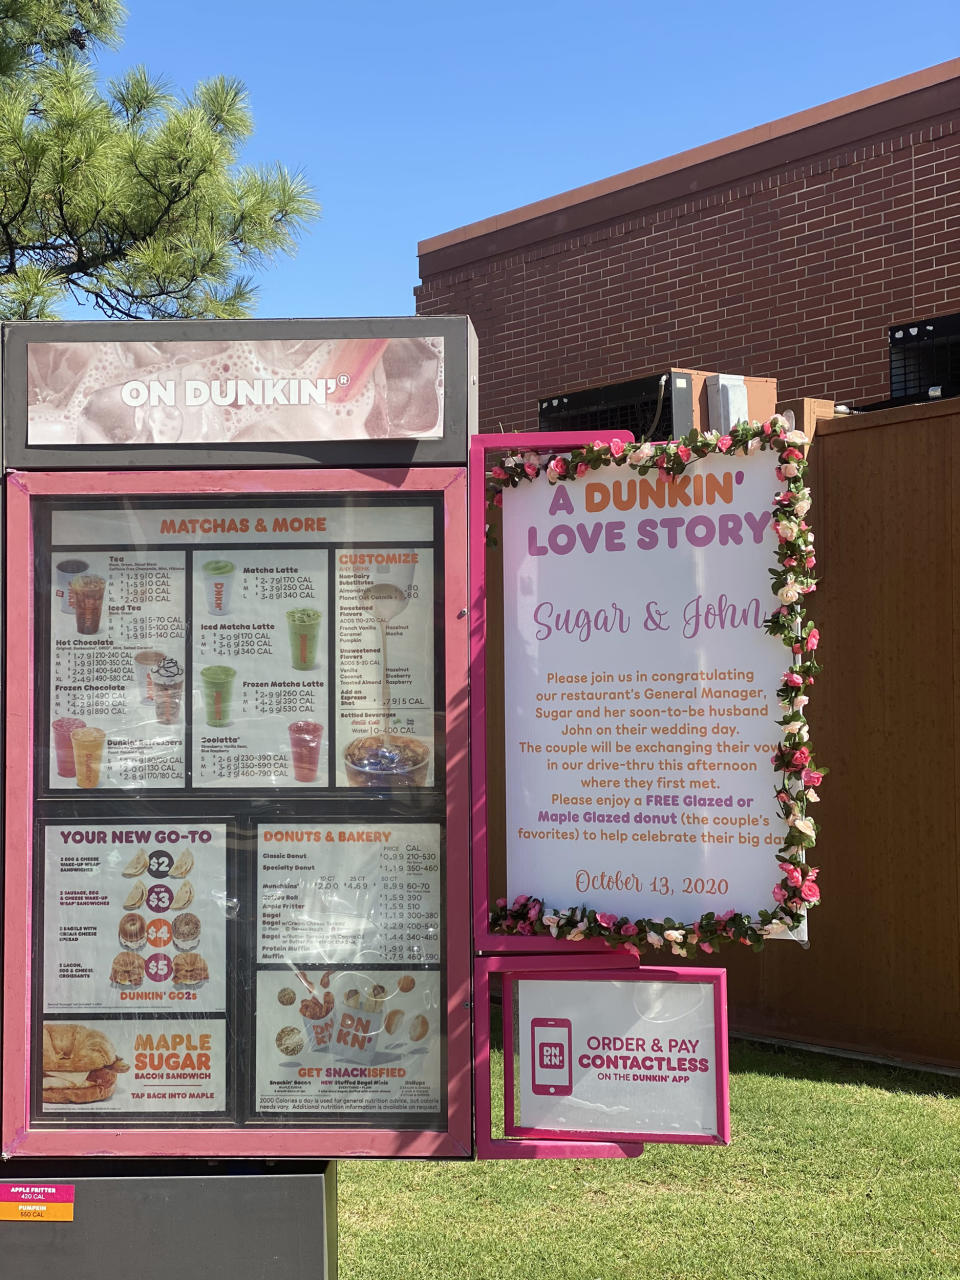 The Dunkin' love story was showcased on the restaurant's menu. (Courtesy Jillian Gallagher and Emma Burke)